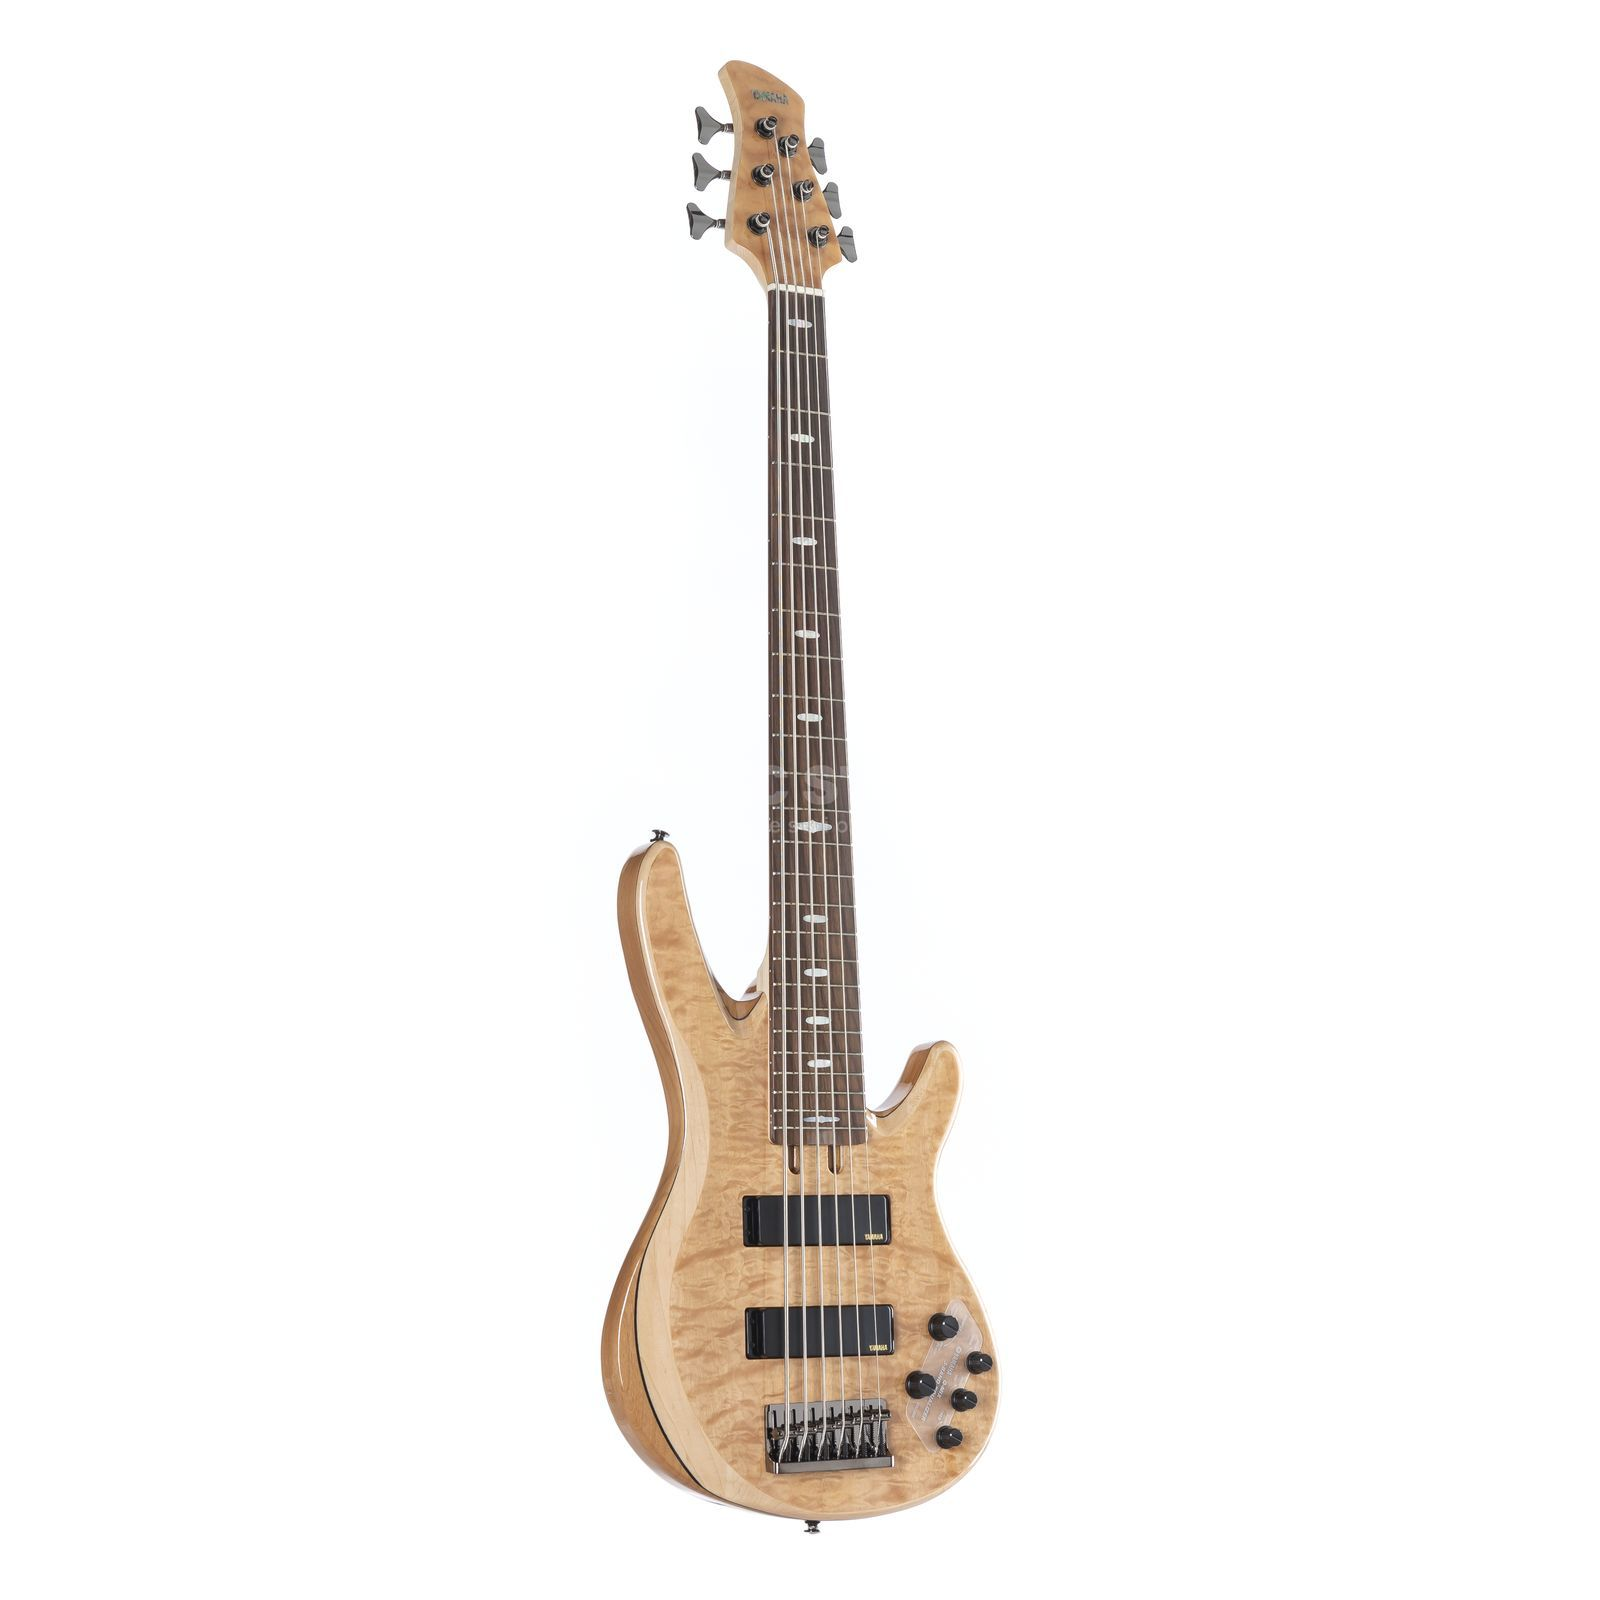 Yamaha TRB1006J 6-String Bass Guitar,  Natural   Product Image